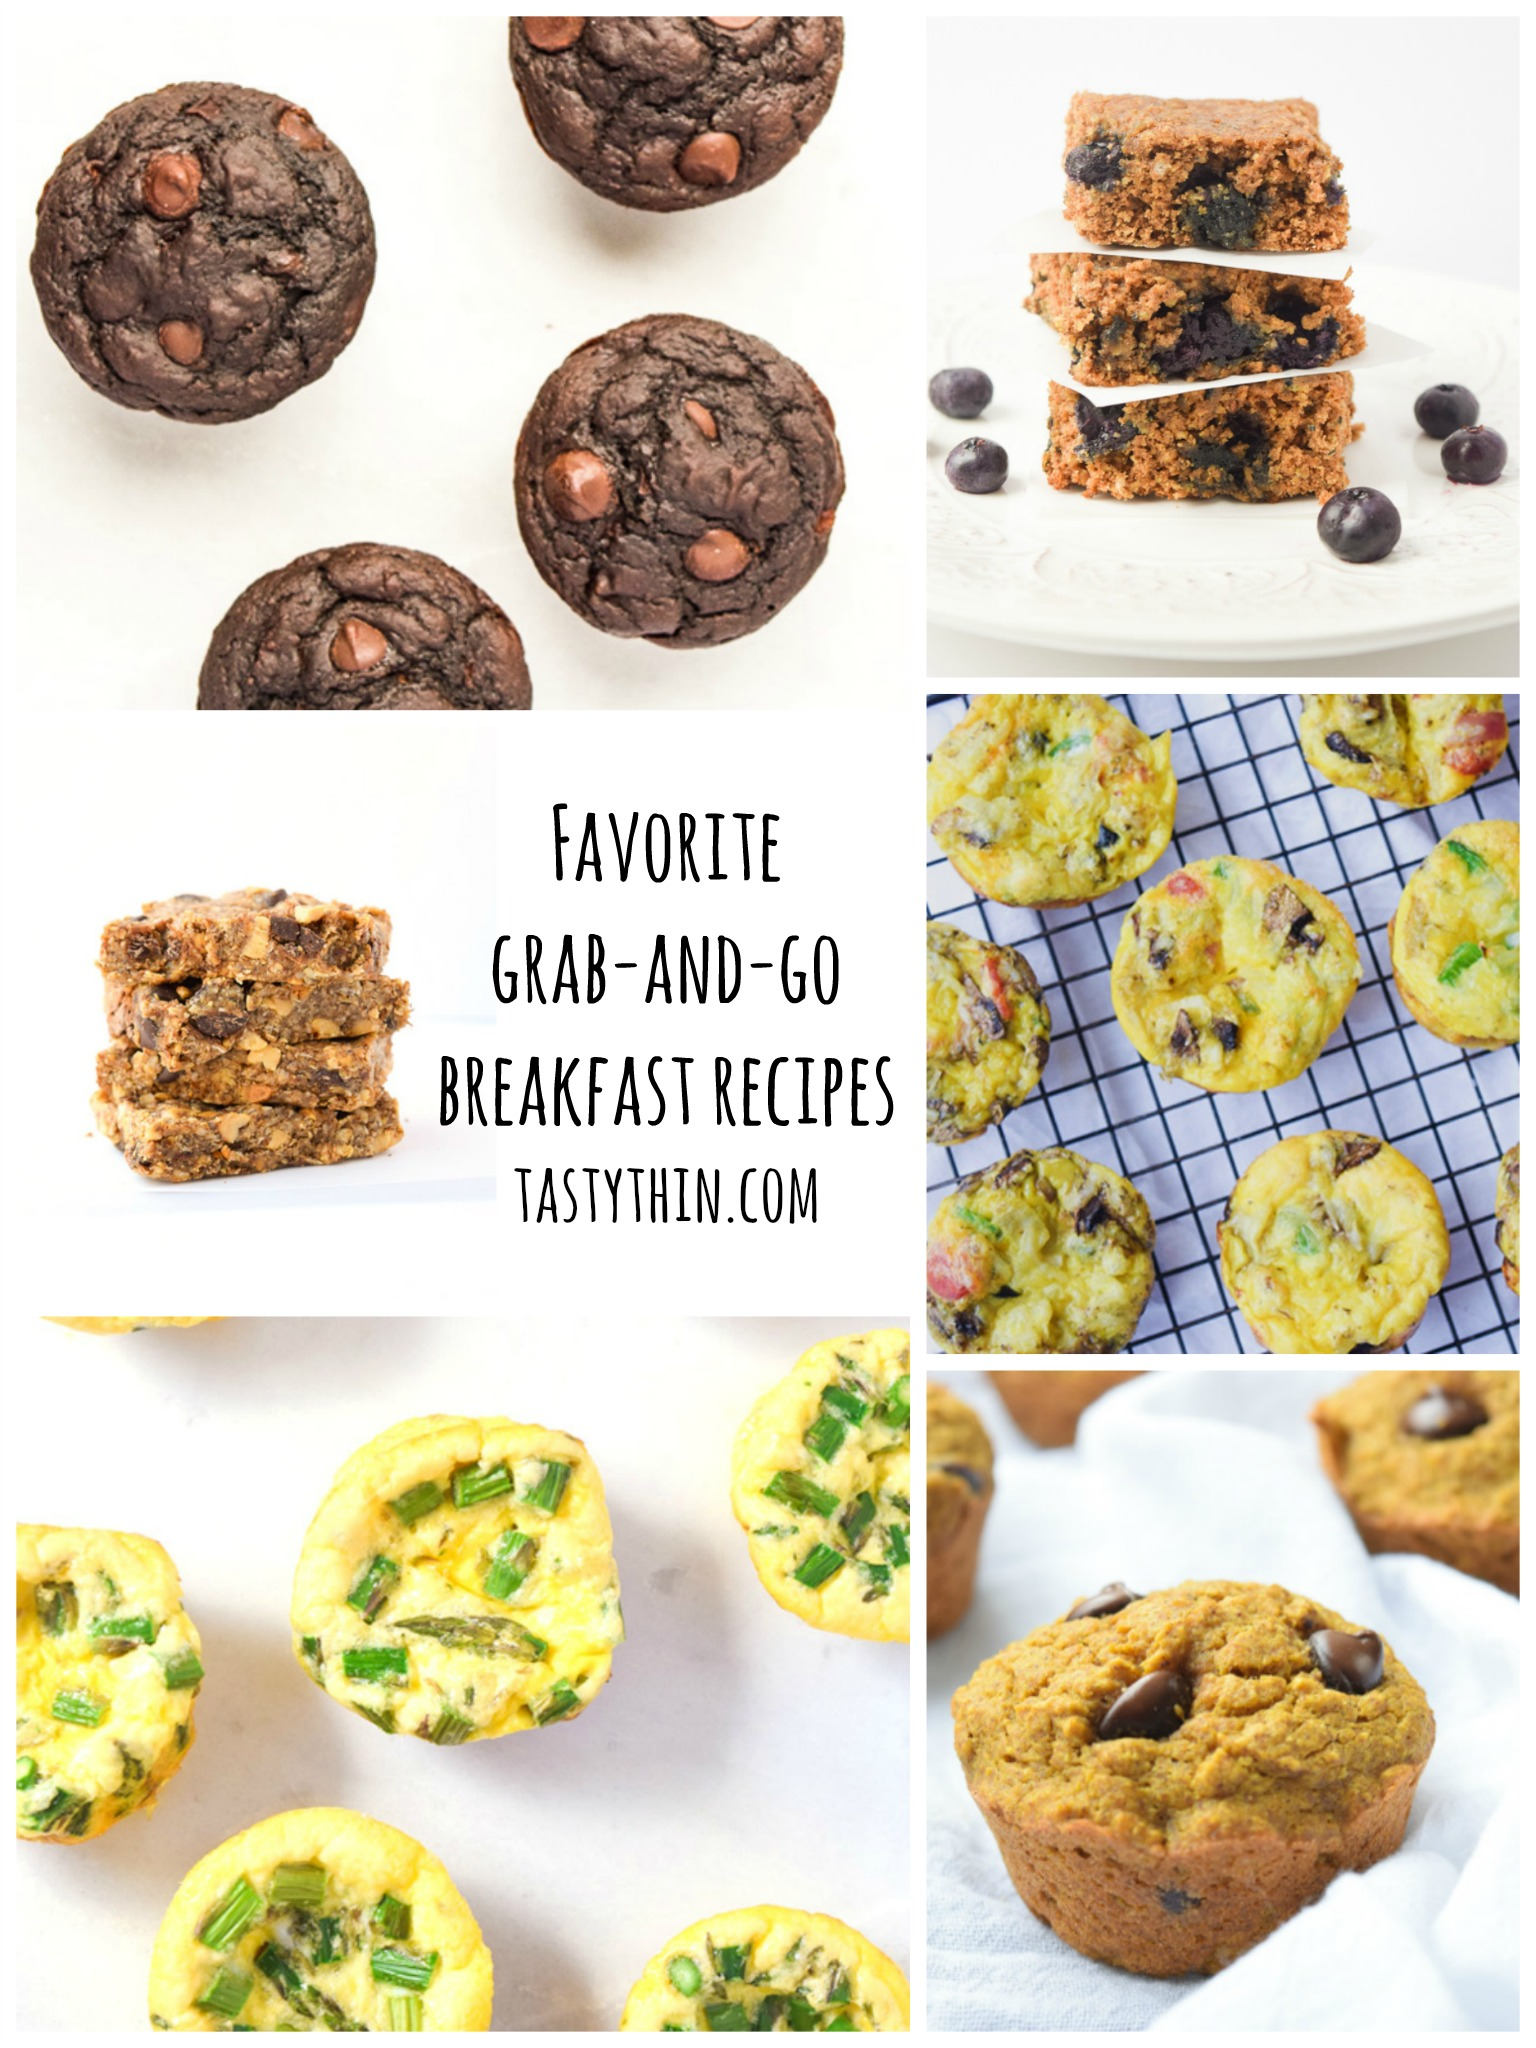 Healthy Family Meal Prep - Favorite Grab and Go Breakfast Recipes that are nutritious, family friendly, and super tasty! | tastythin.com